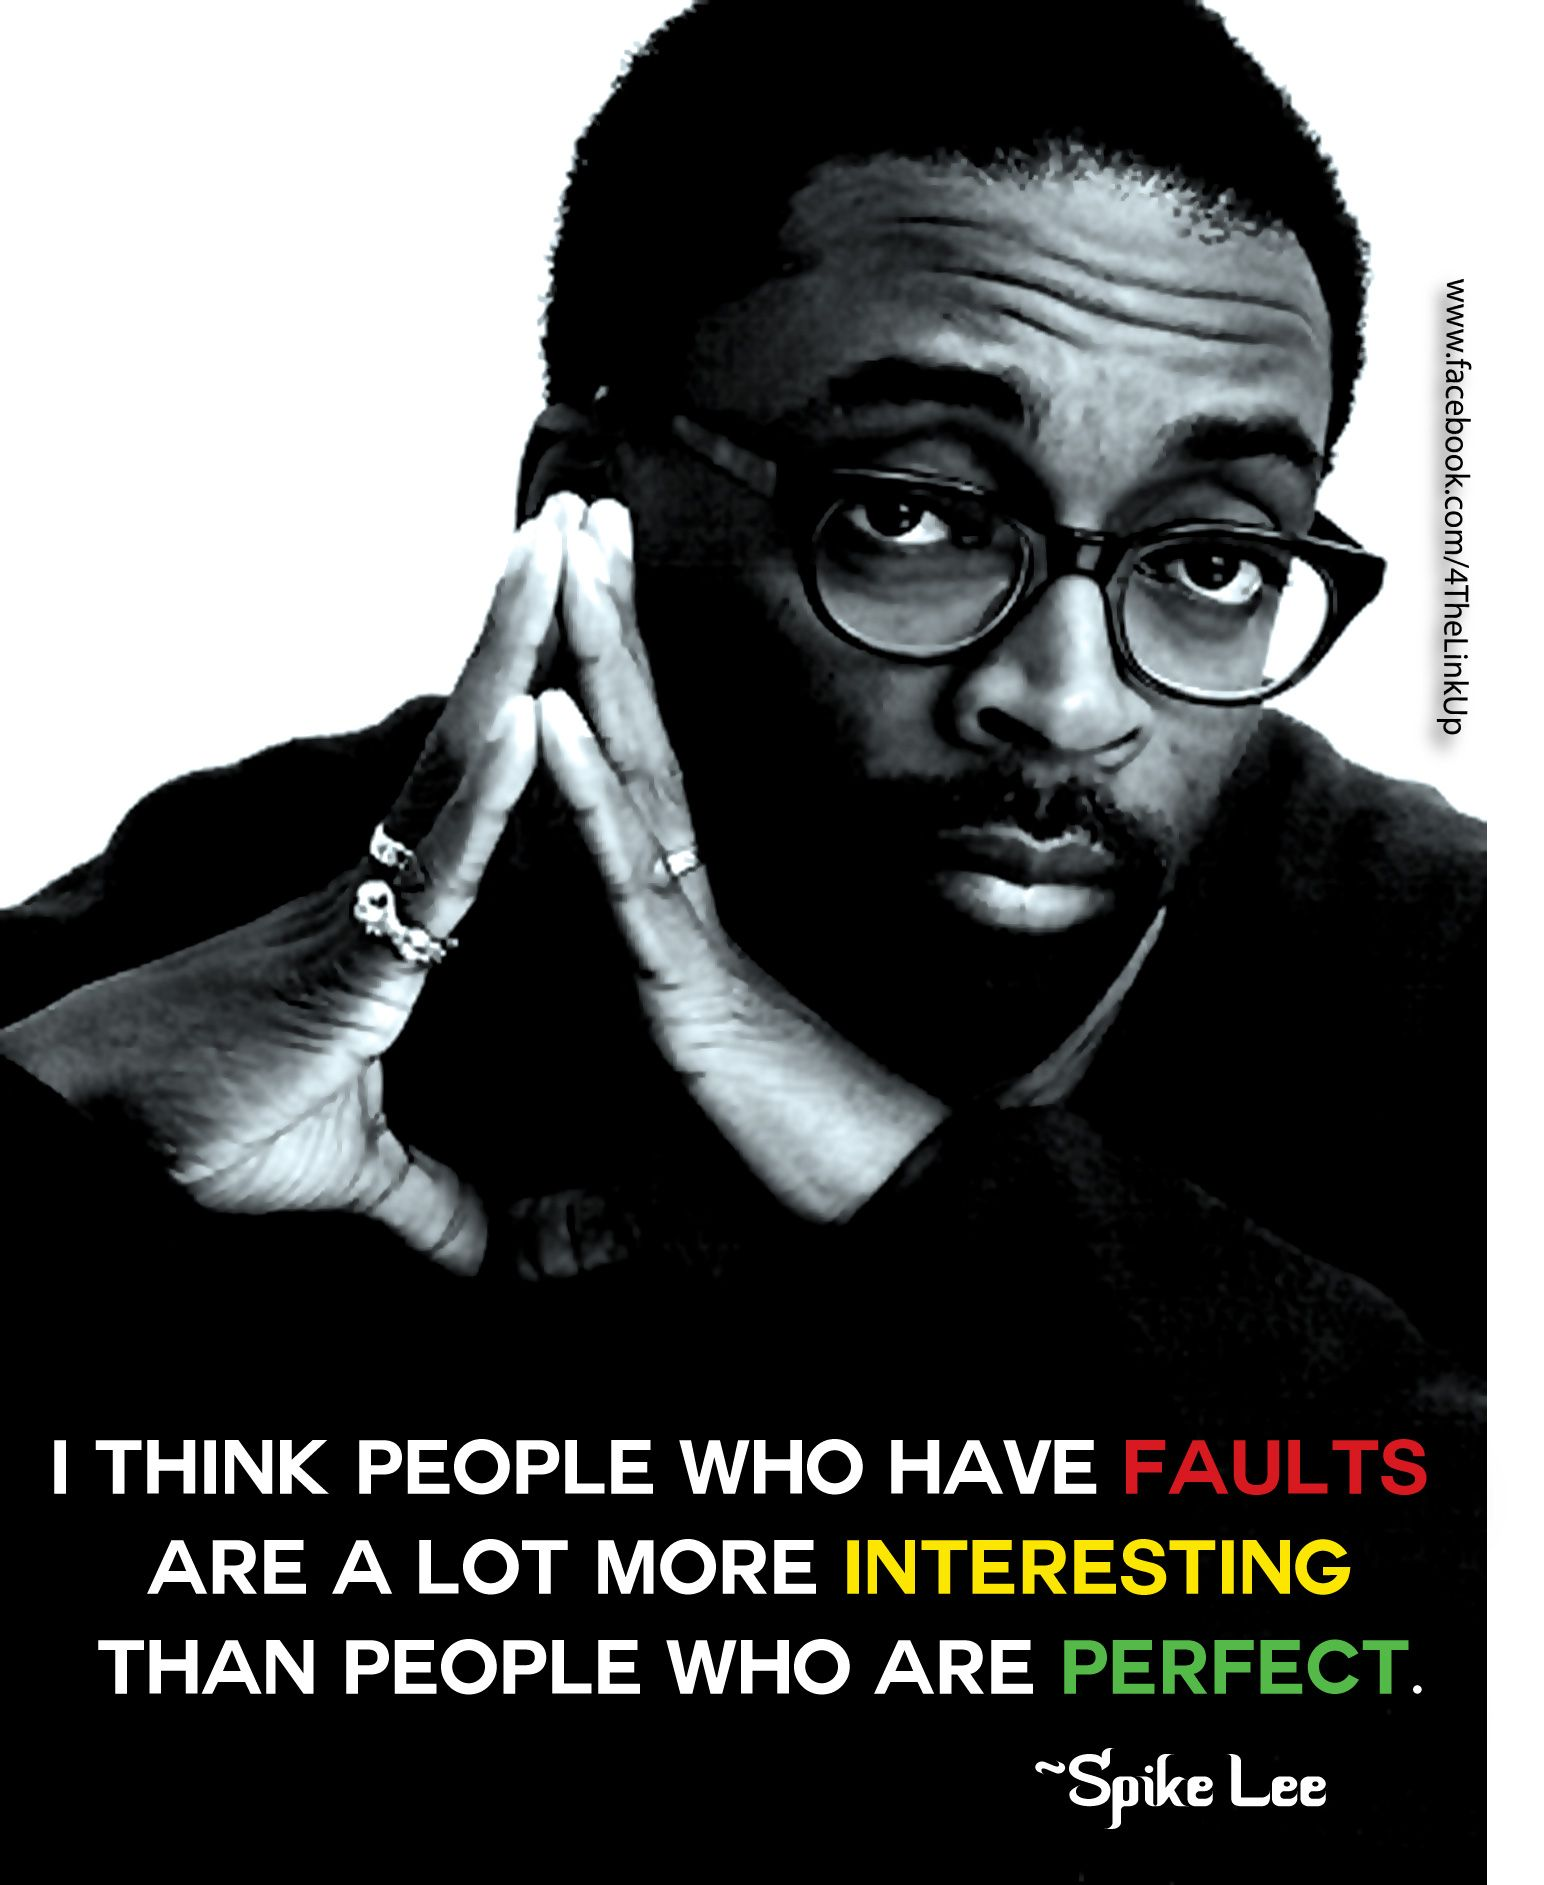 Spike Lee - Film Director Quotes | Film Director Quotes ...